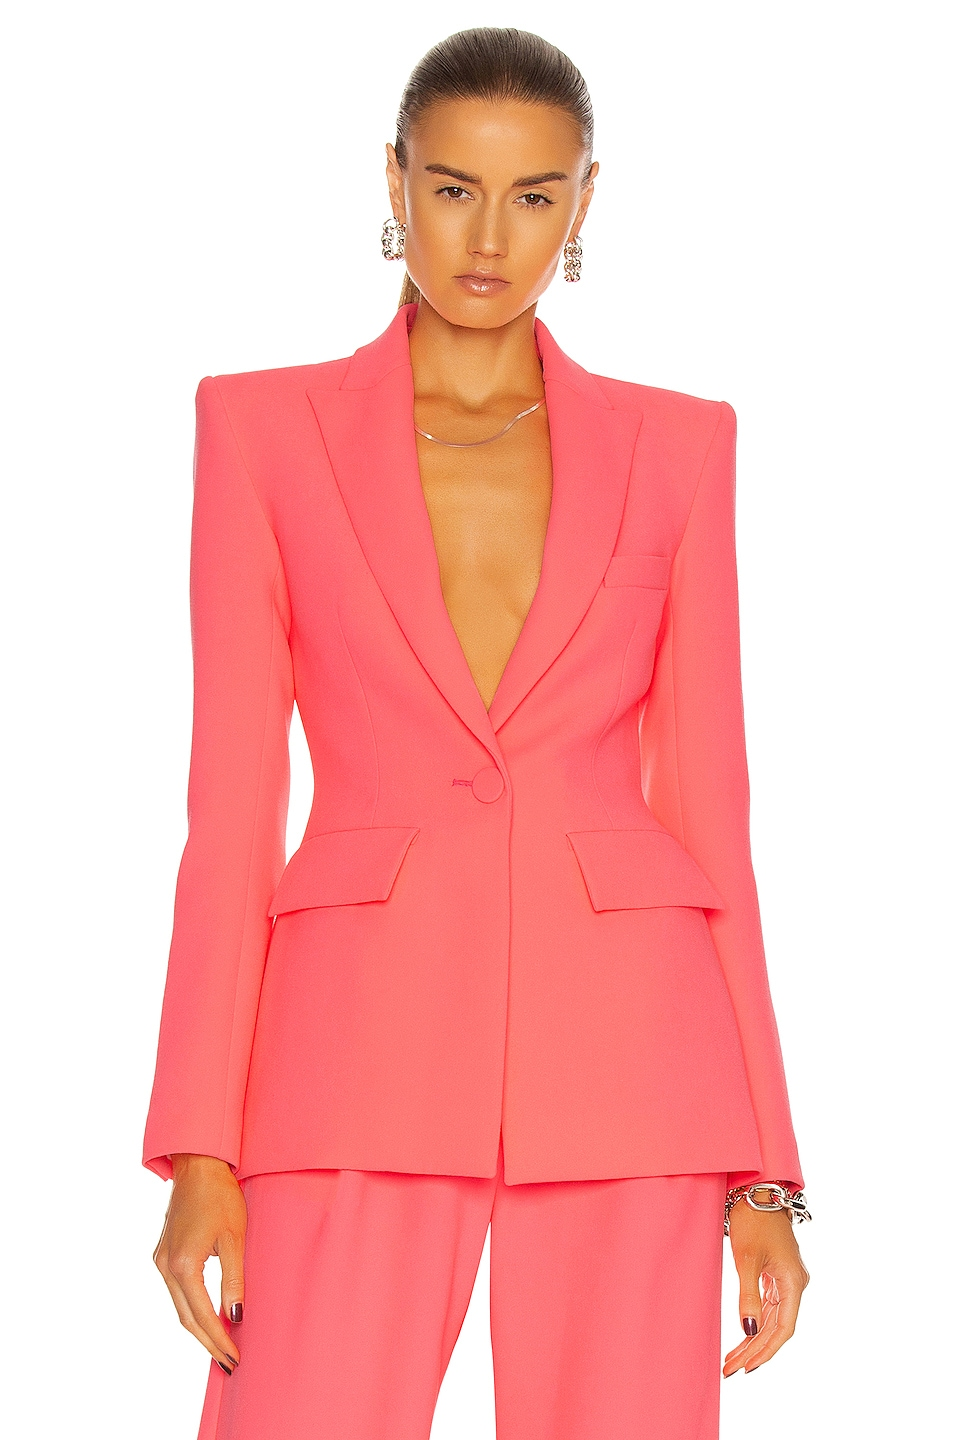 Image 1 of Alex Perry Carter Blazer in Neon Pink